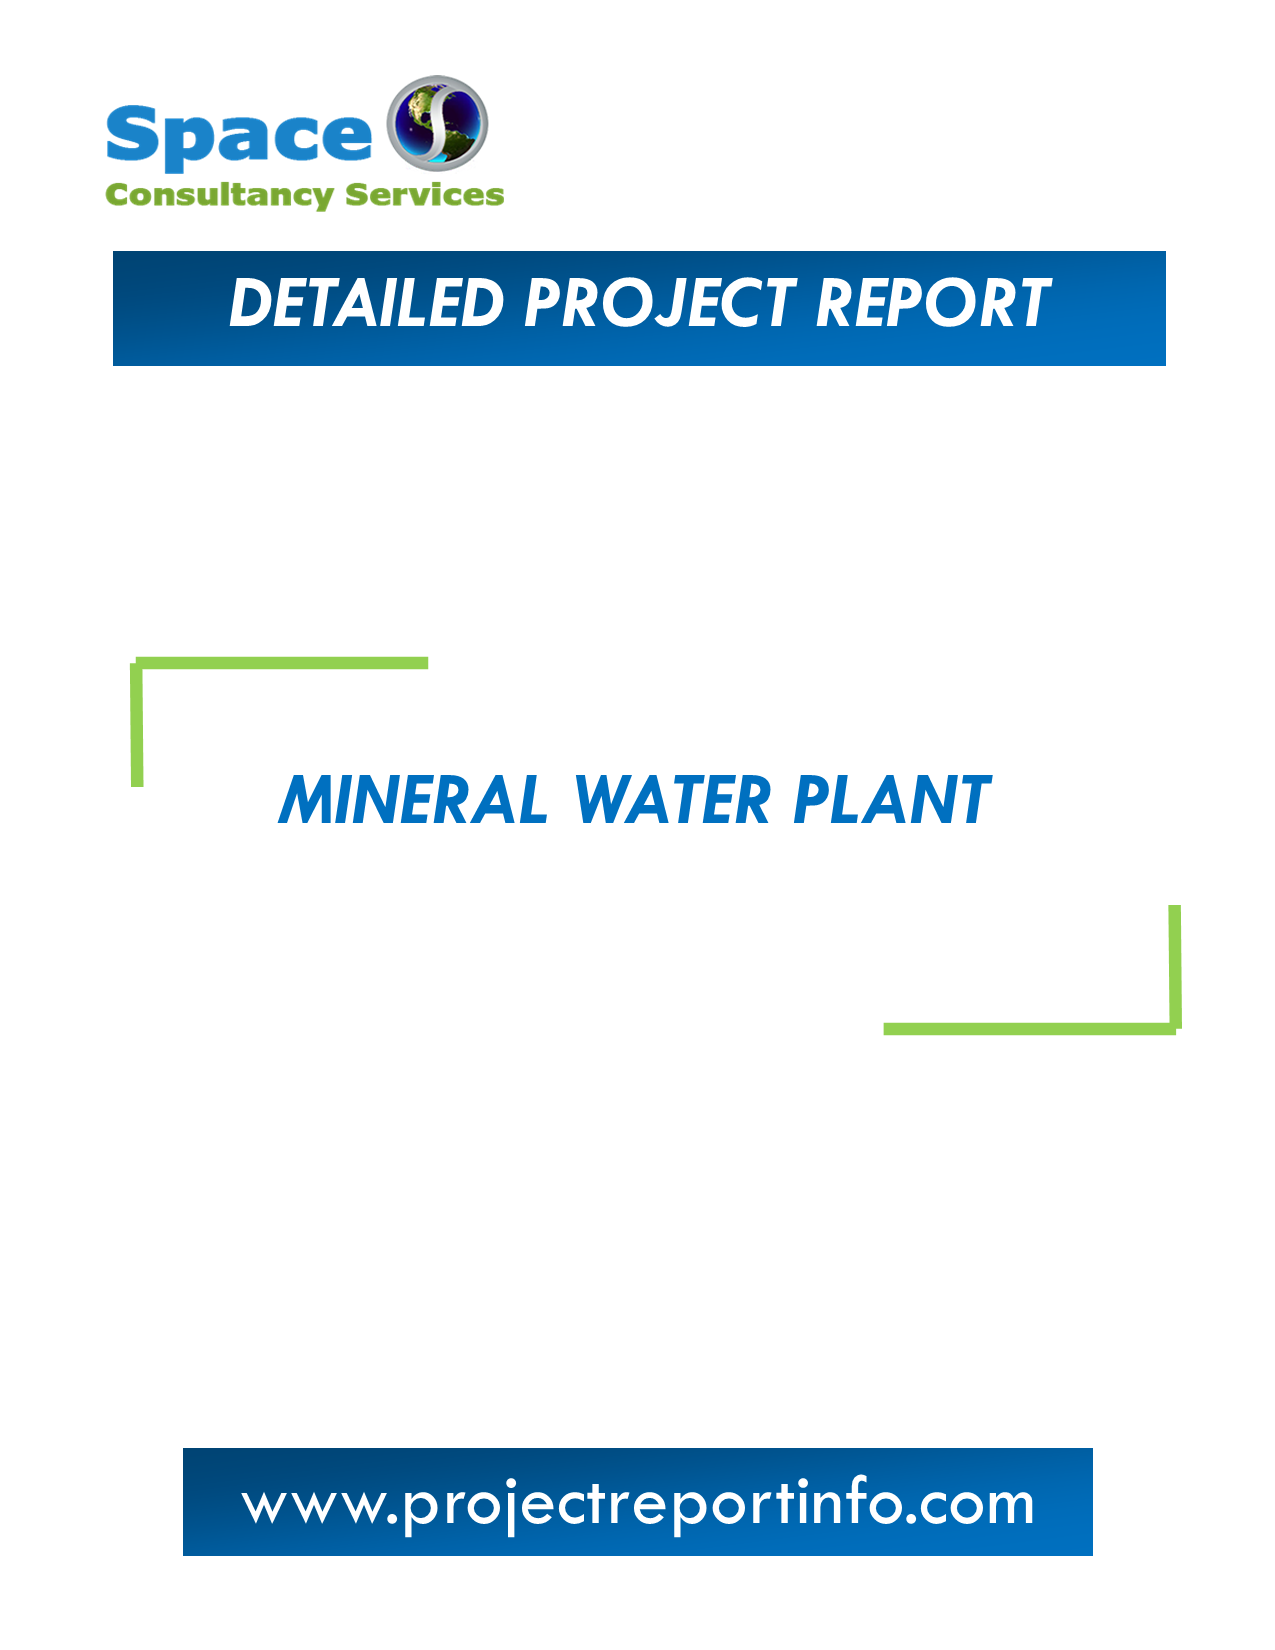 Project Report on Mineral Water Plant